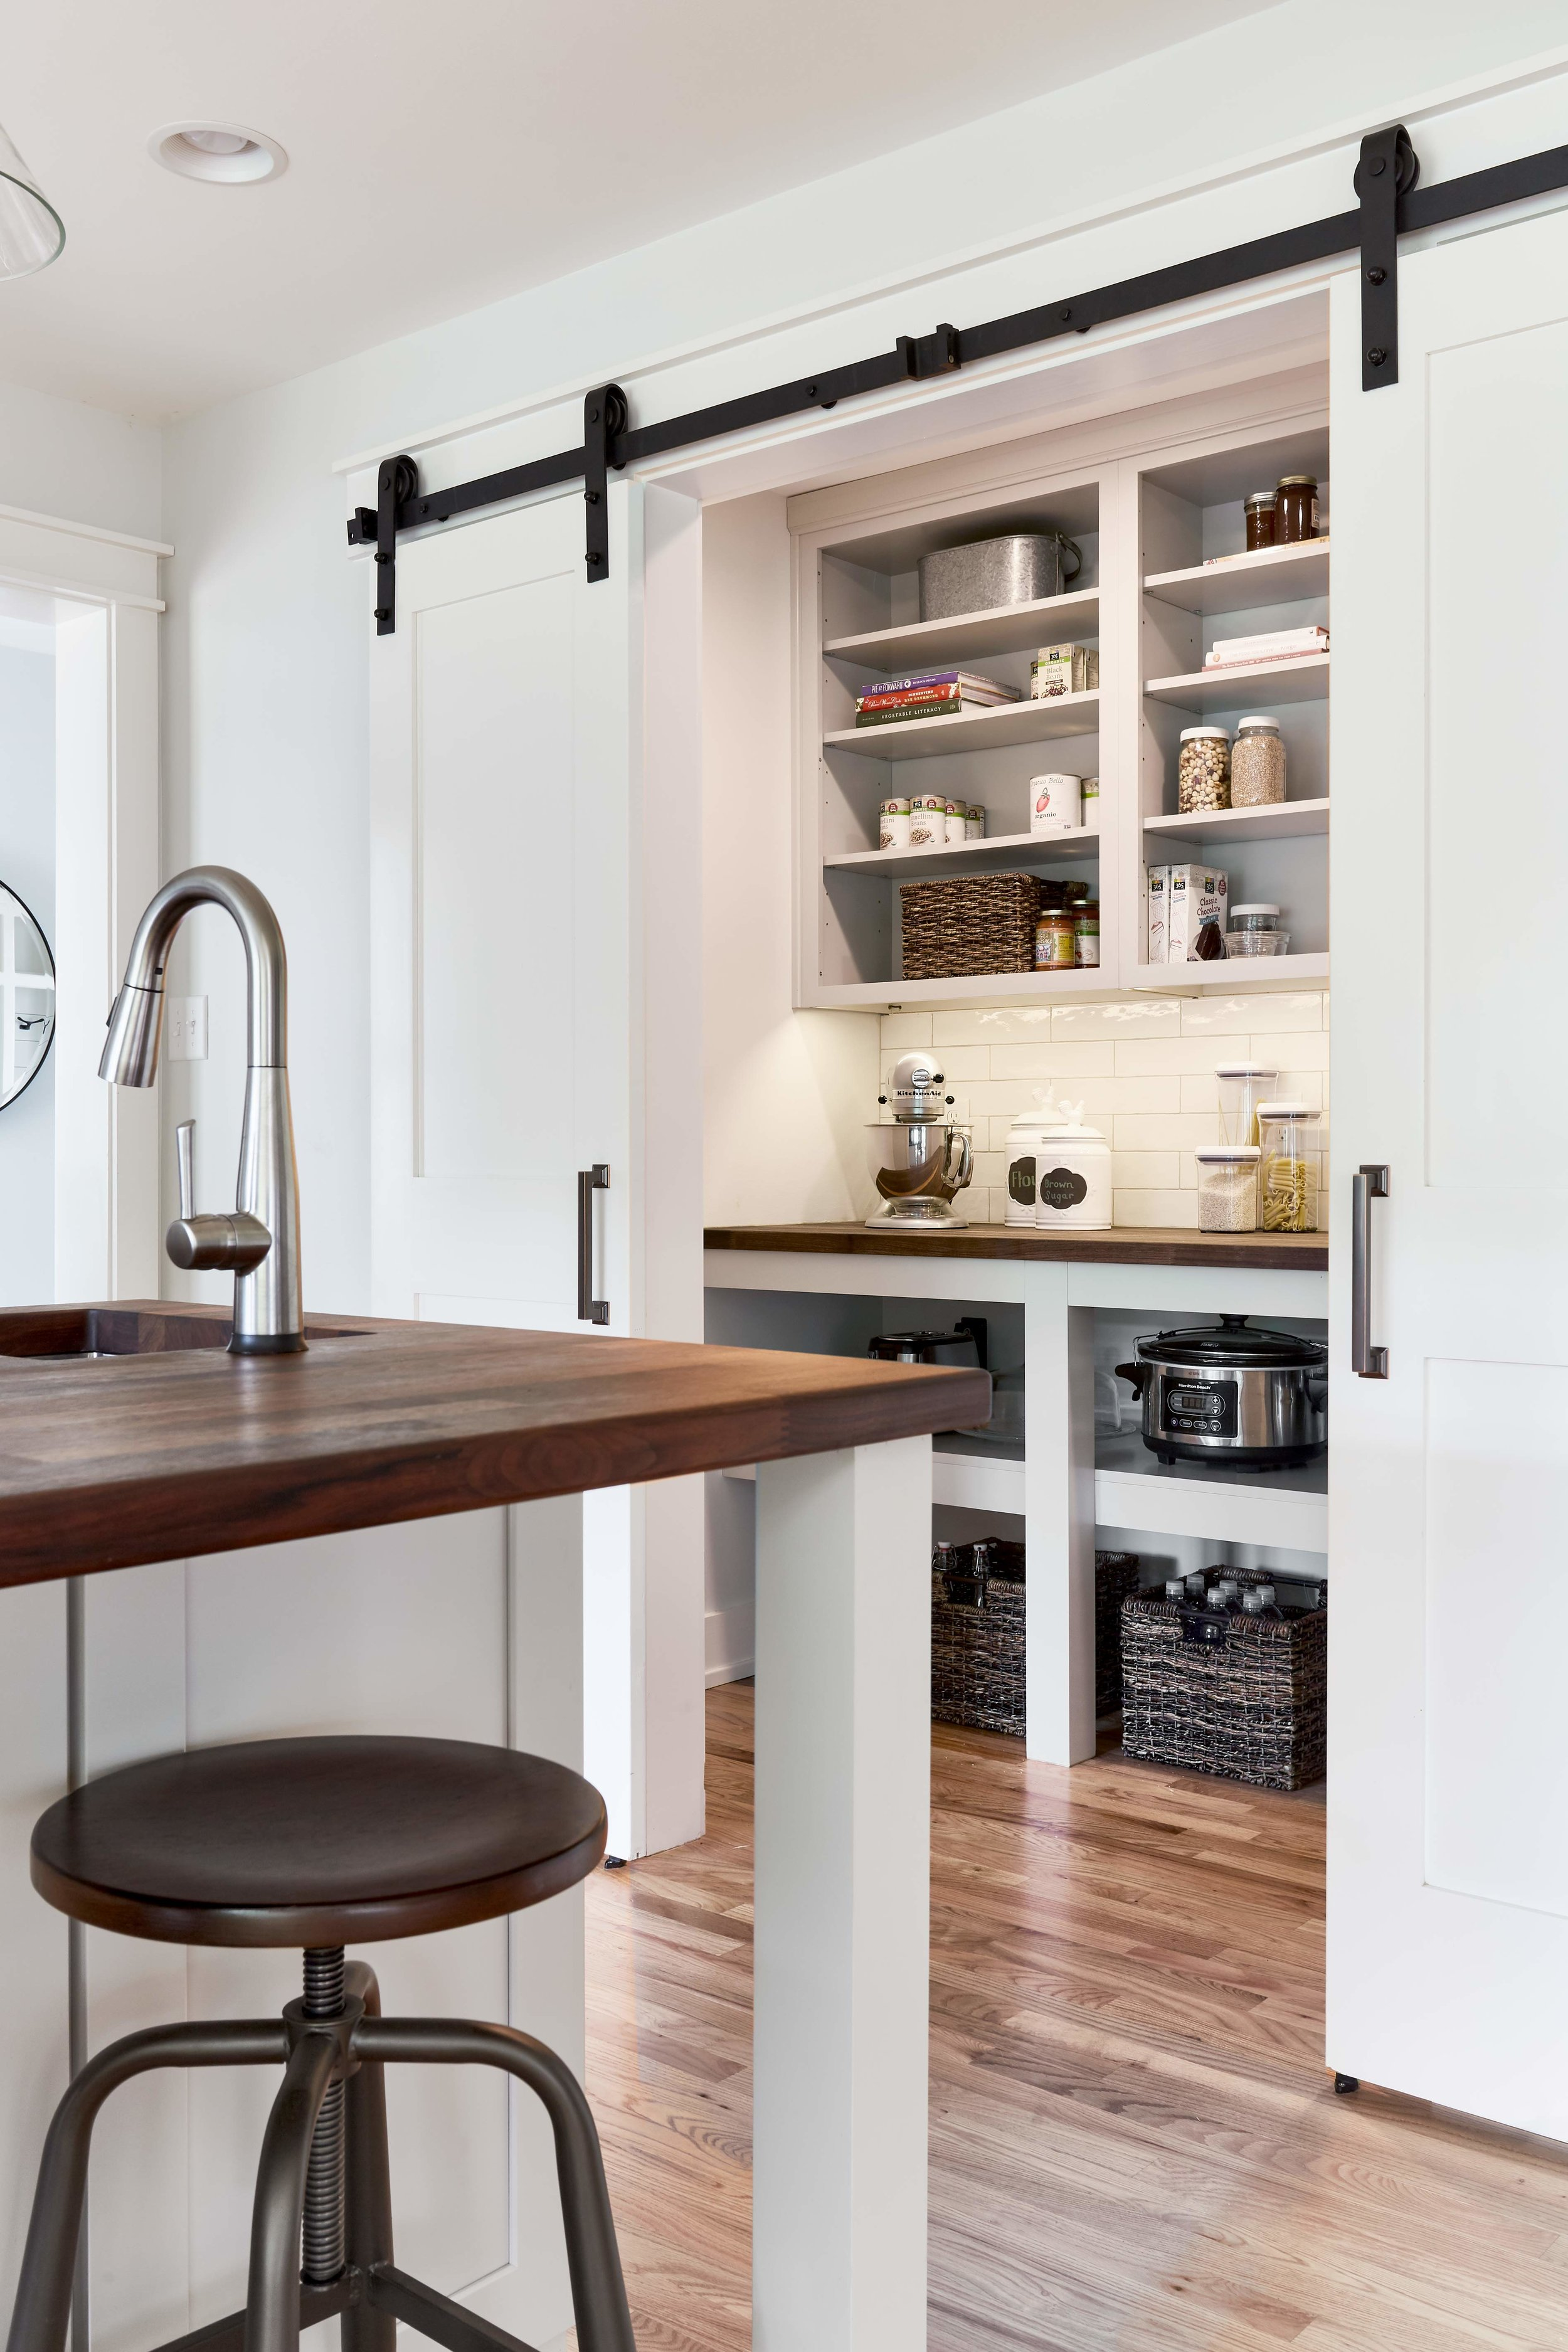 Renovated farmhouse kitchen featuring working pantry with sliding barn doors.